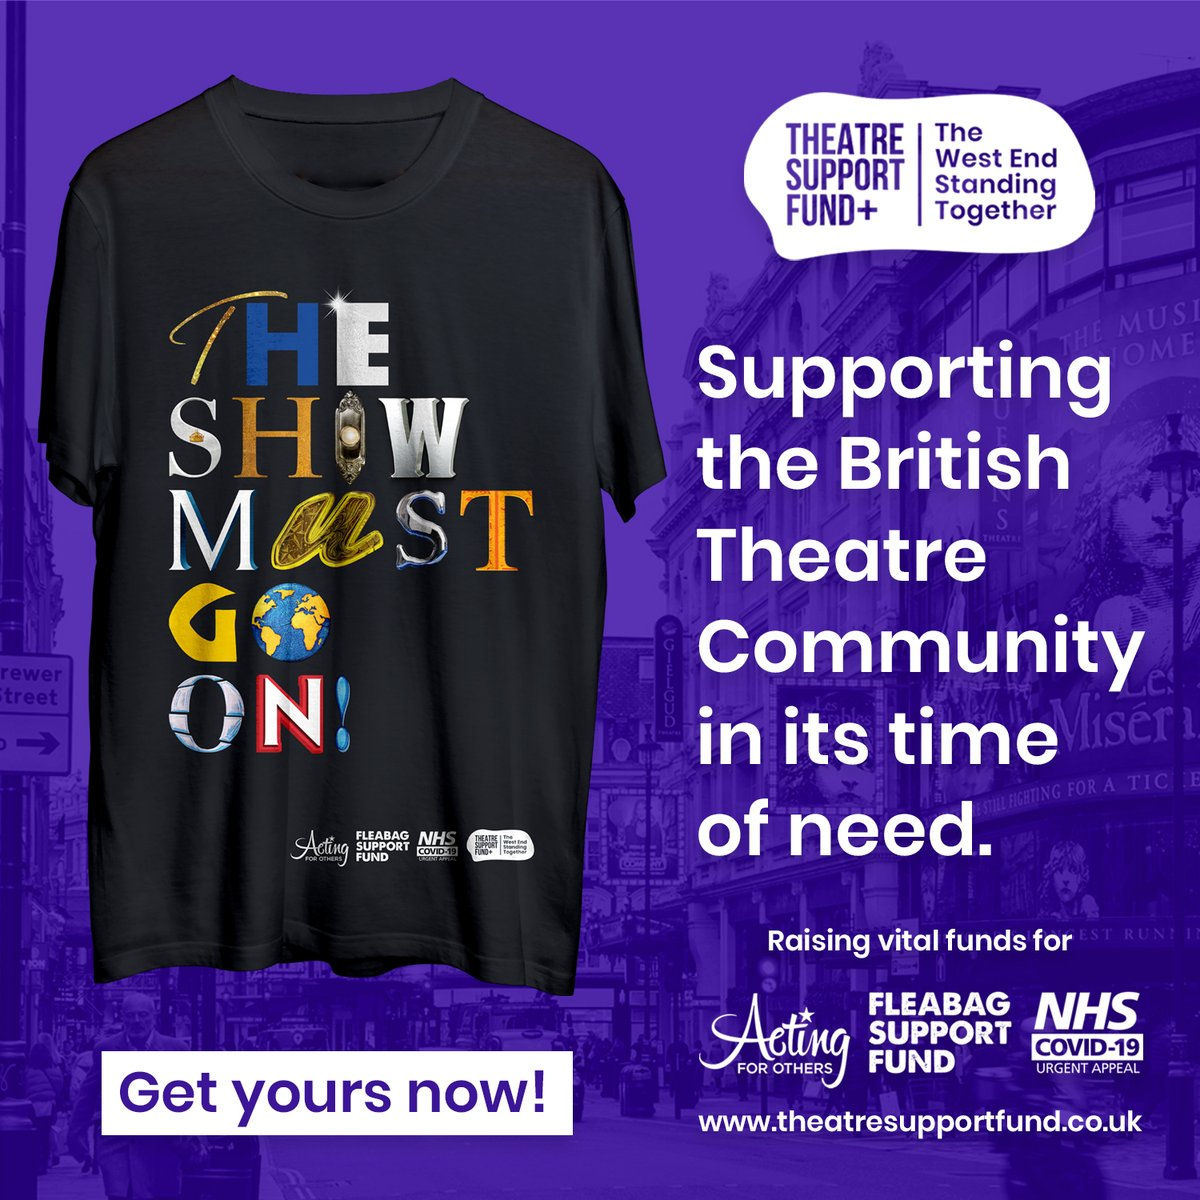 We've added an advert for #TheShowMustGoOn T-shirt to our home page in order to back @theatre_support's great work for @actingforothers #fleabagforcharity & @nhscharities   Advertise your fundraisers or #musicaltheatre projects with us. There's no charge at this uncertain time.